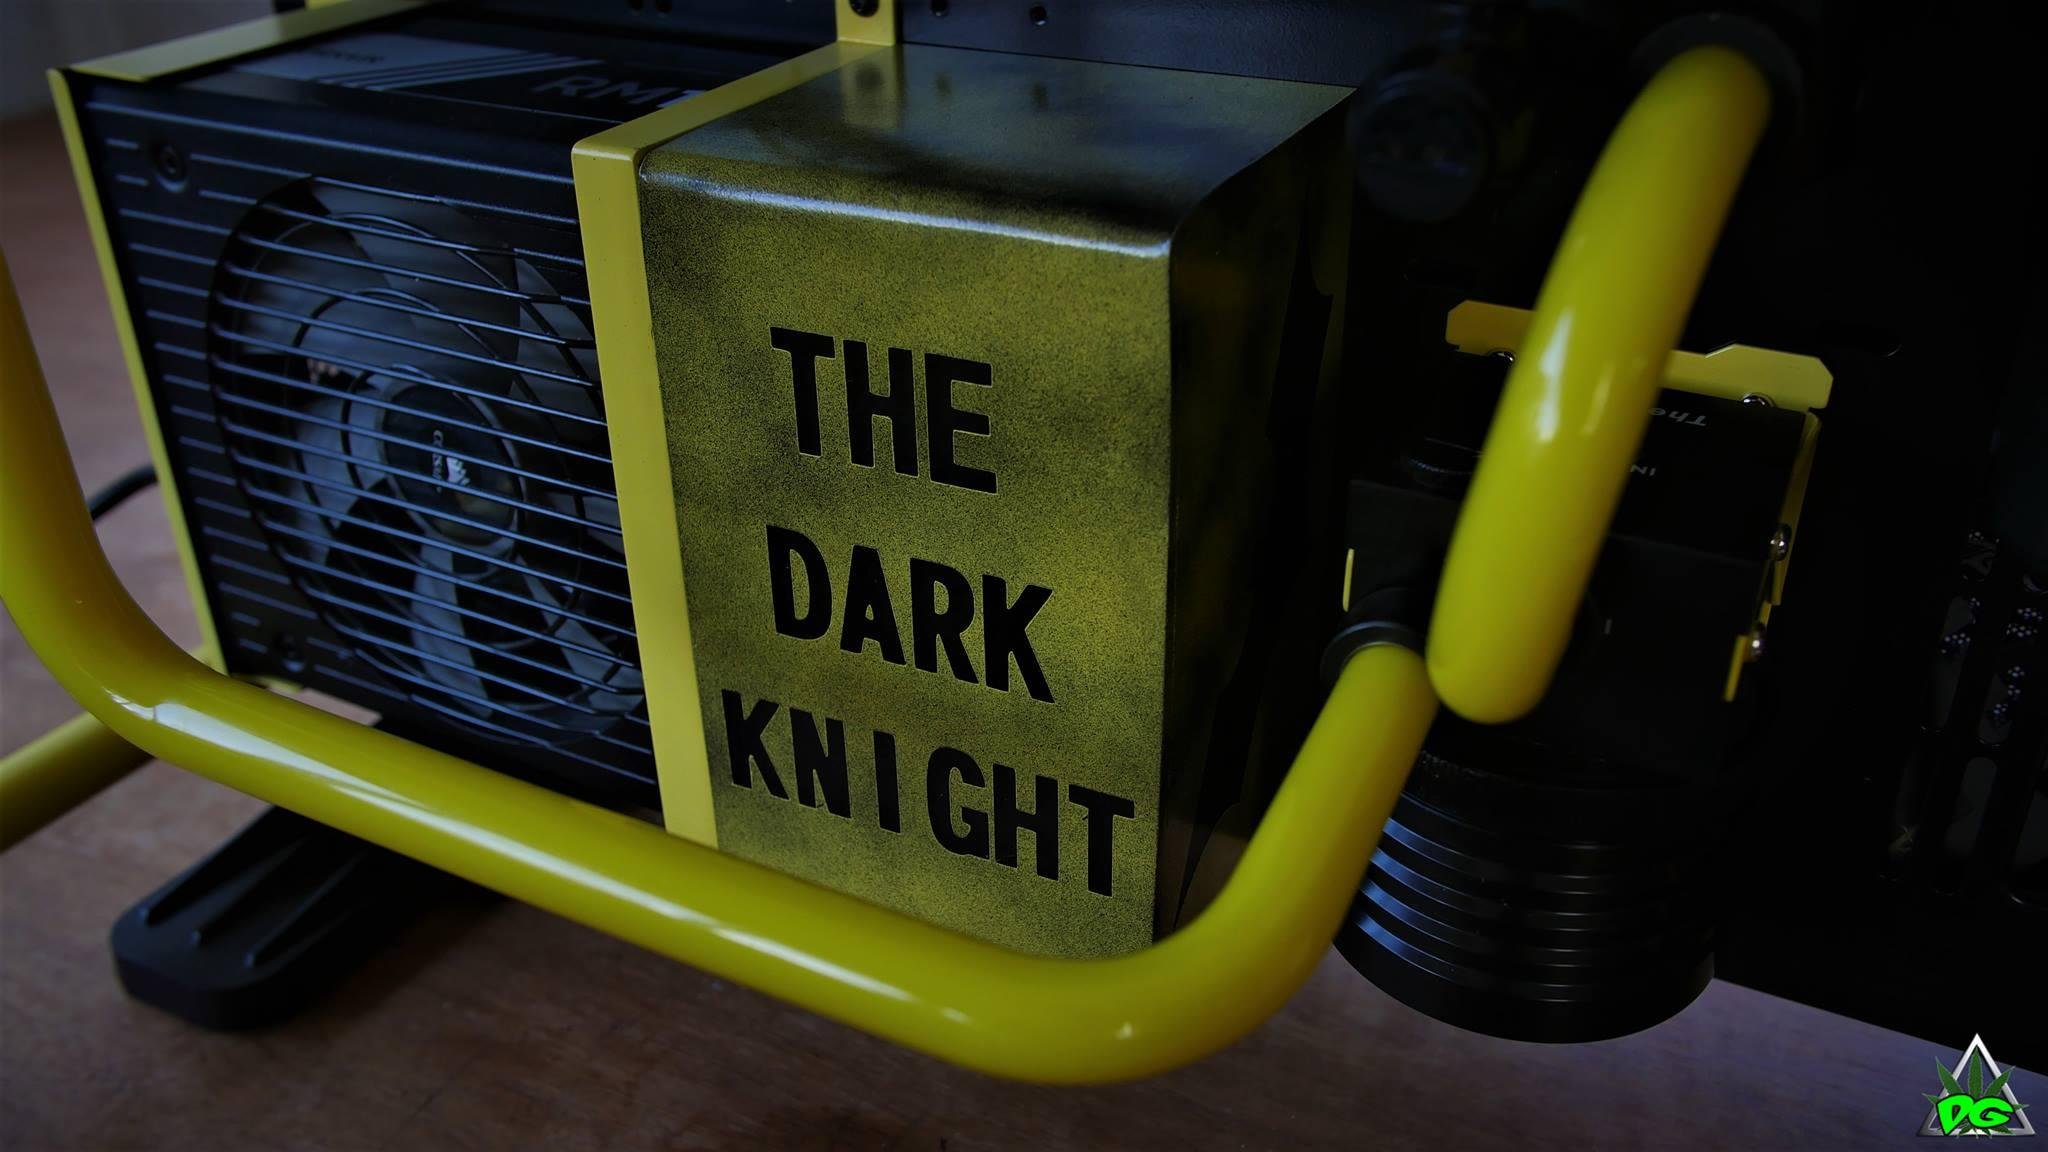 Dark Knight - XFastest - 17192448_1274919592589631_6436265606279295592_o.jpg